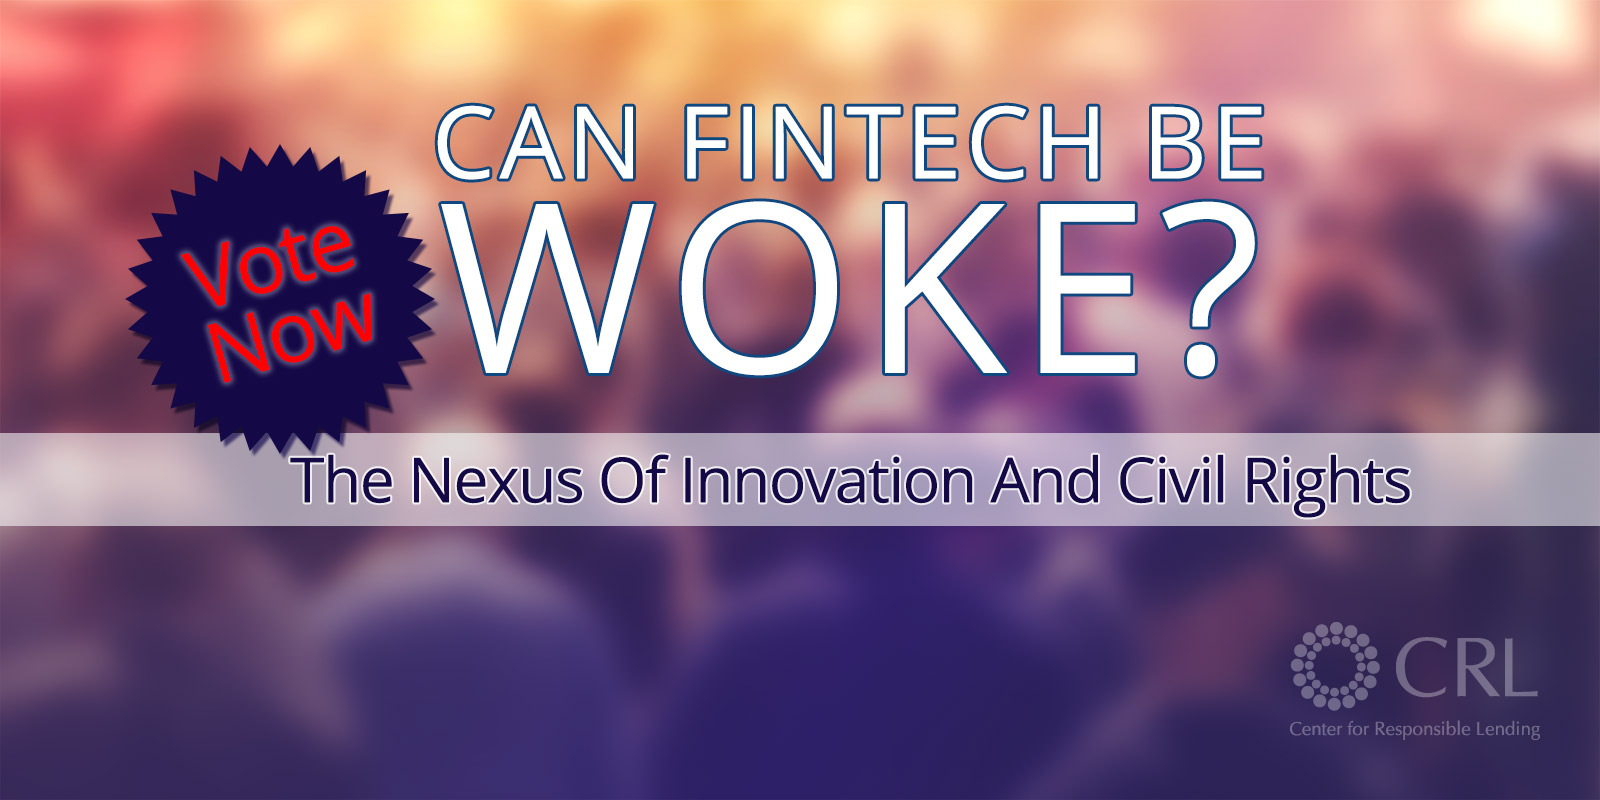 Can FinTech Be Woke: The Nexus of Innovation and Civil Rights